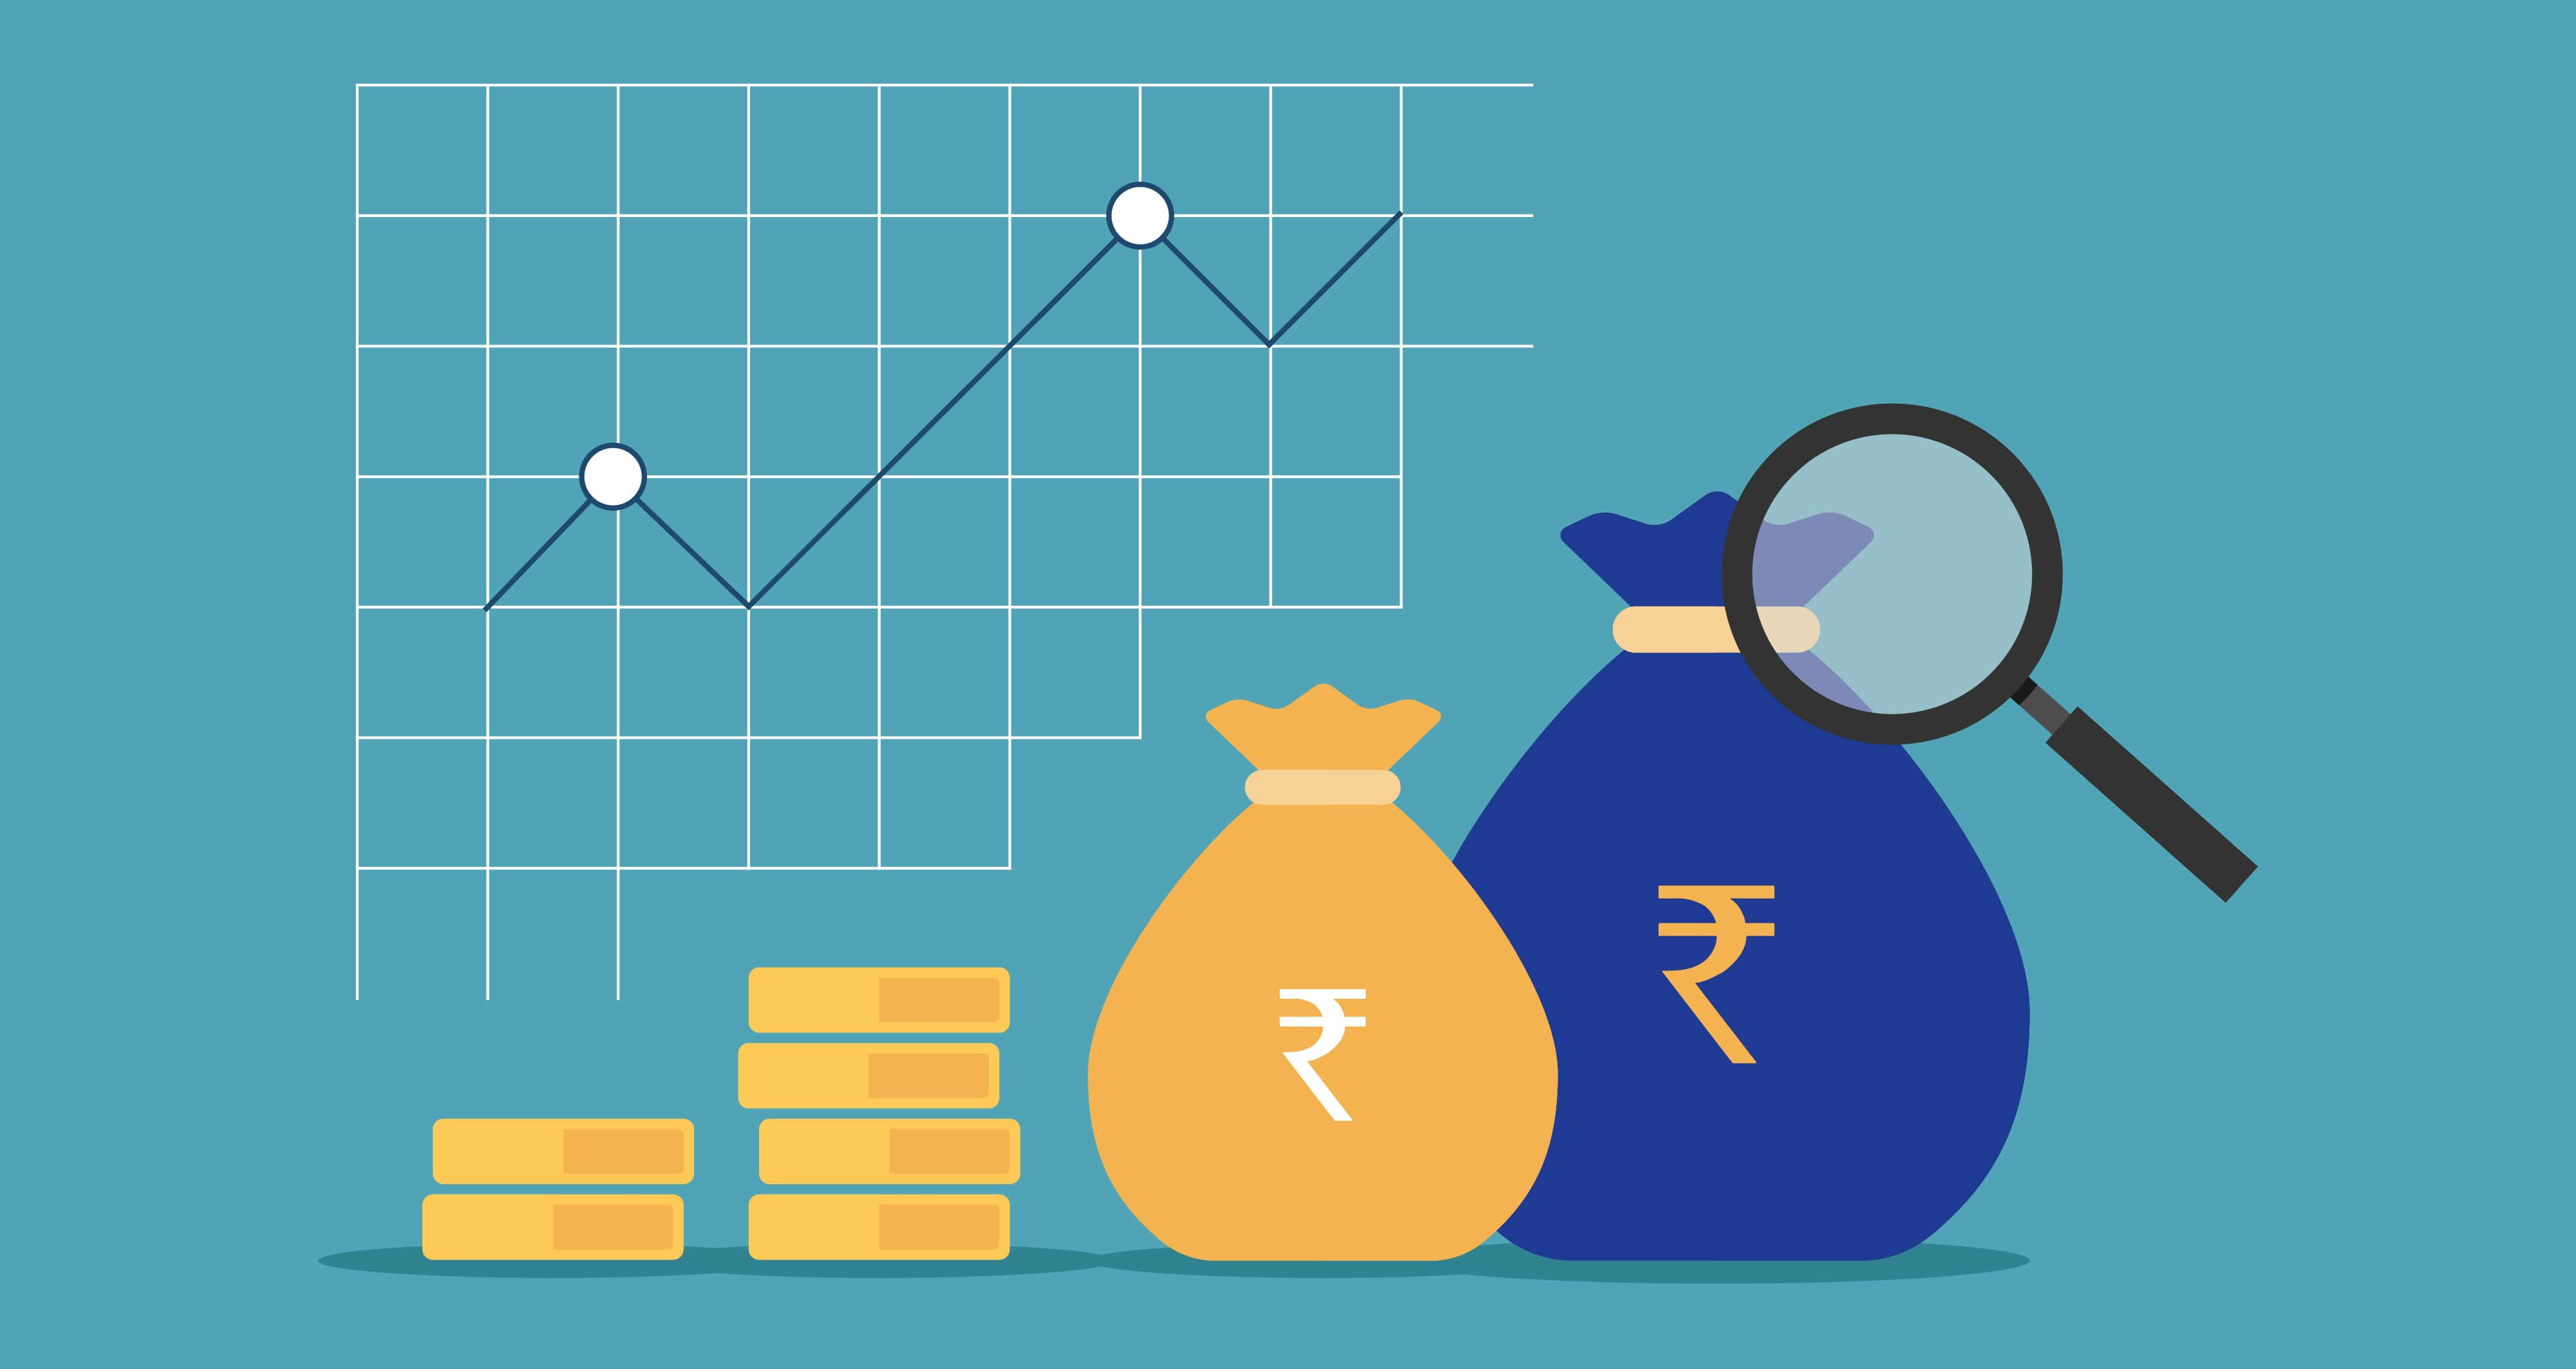 Small cap vs mid cap vs large cap funds: An analysis